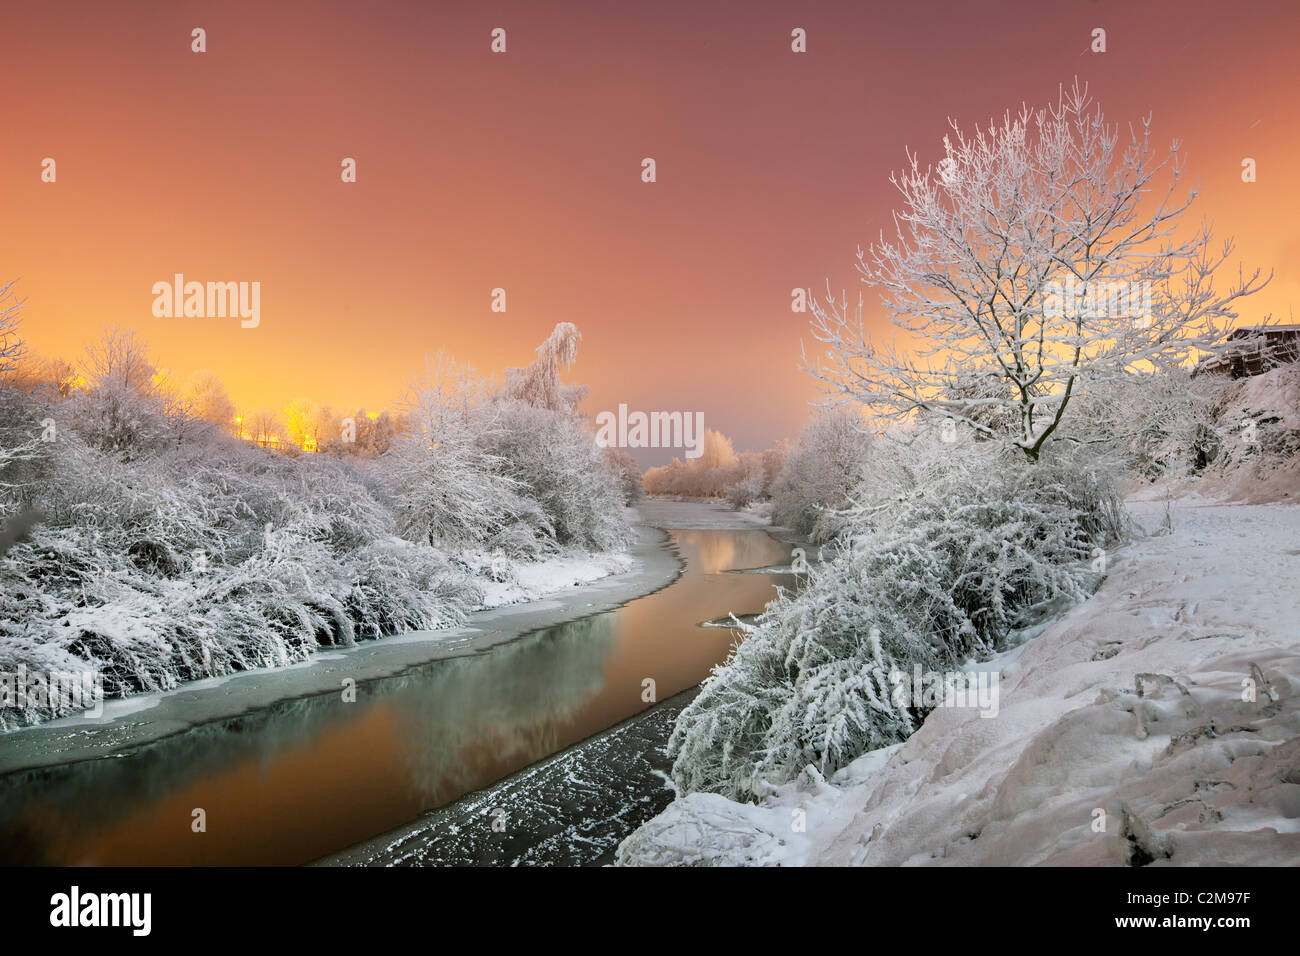 River Lagan in sub zero tempertures. - Stock Image